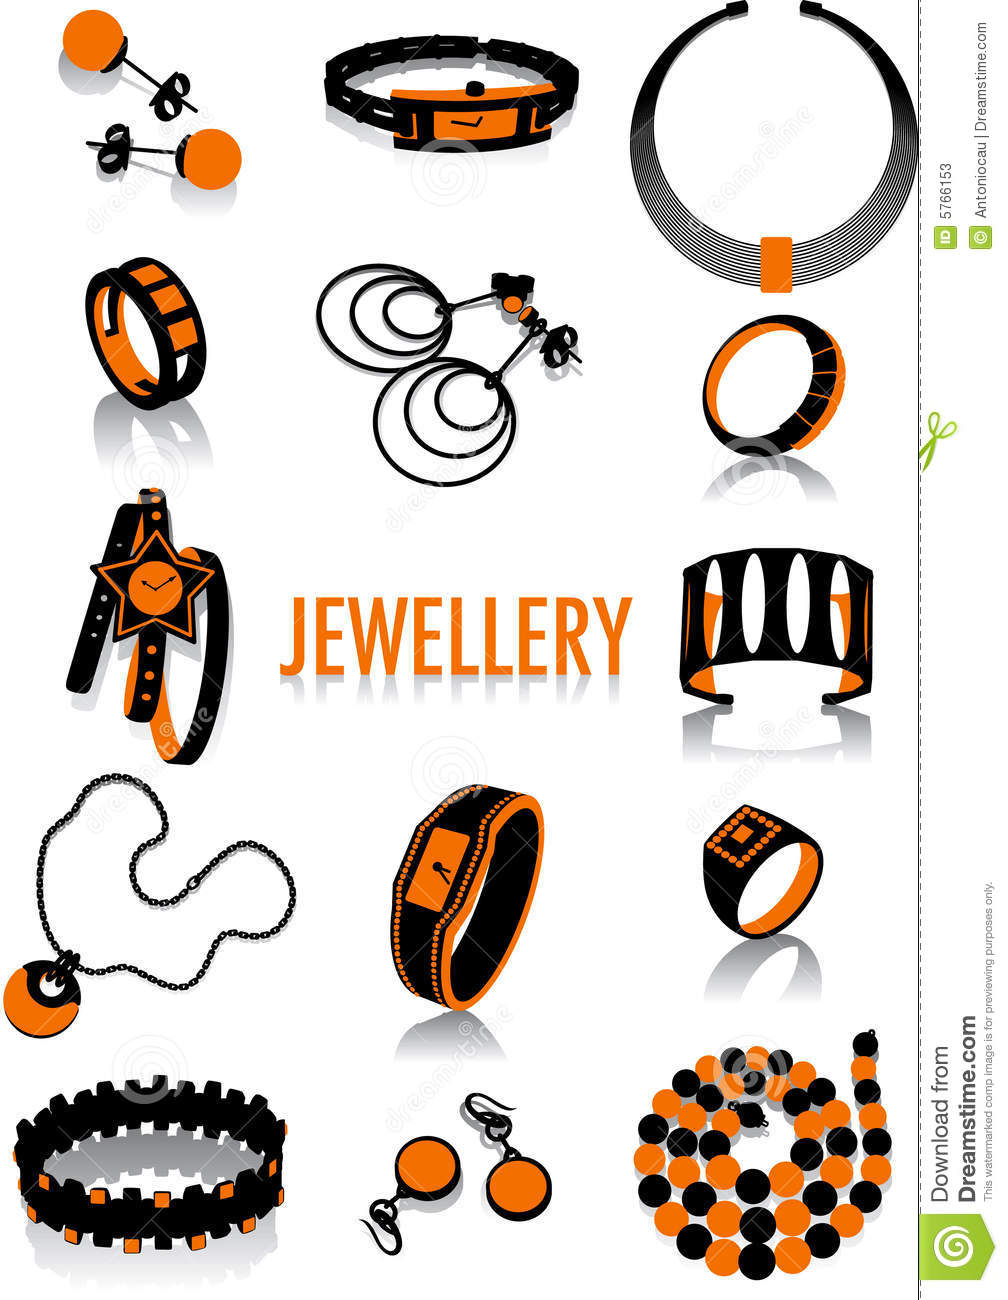 Jewellery Silhouette Stock Photos   Image  5766153